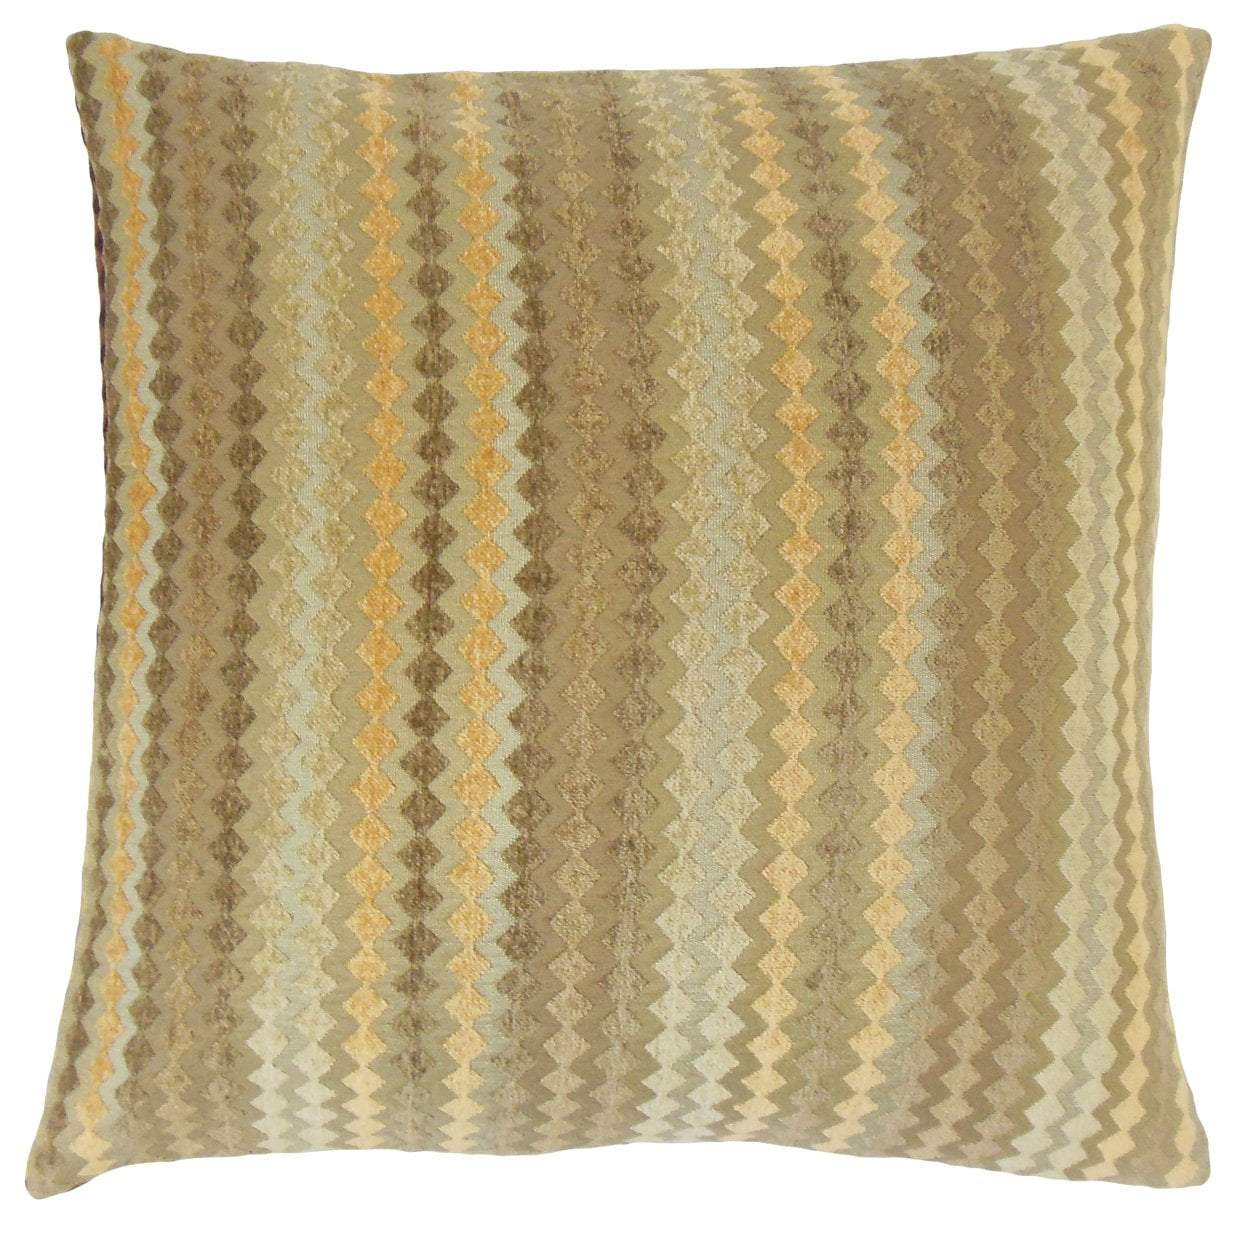 Perkins Throw Pillow Cover